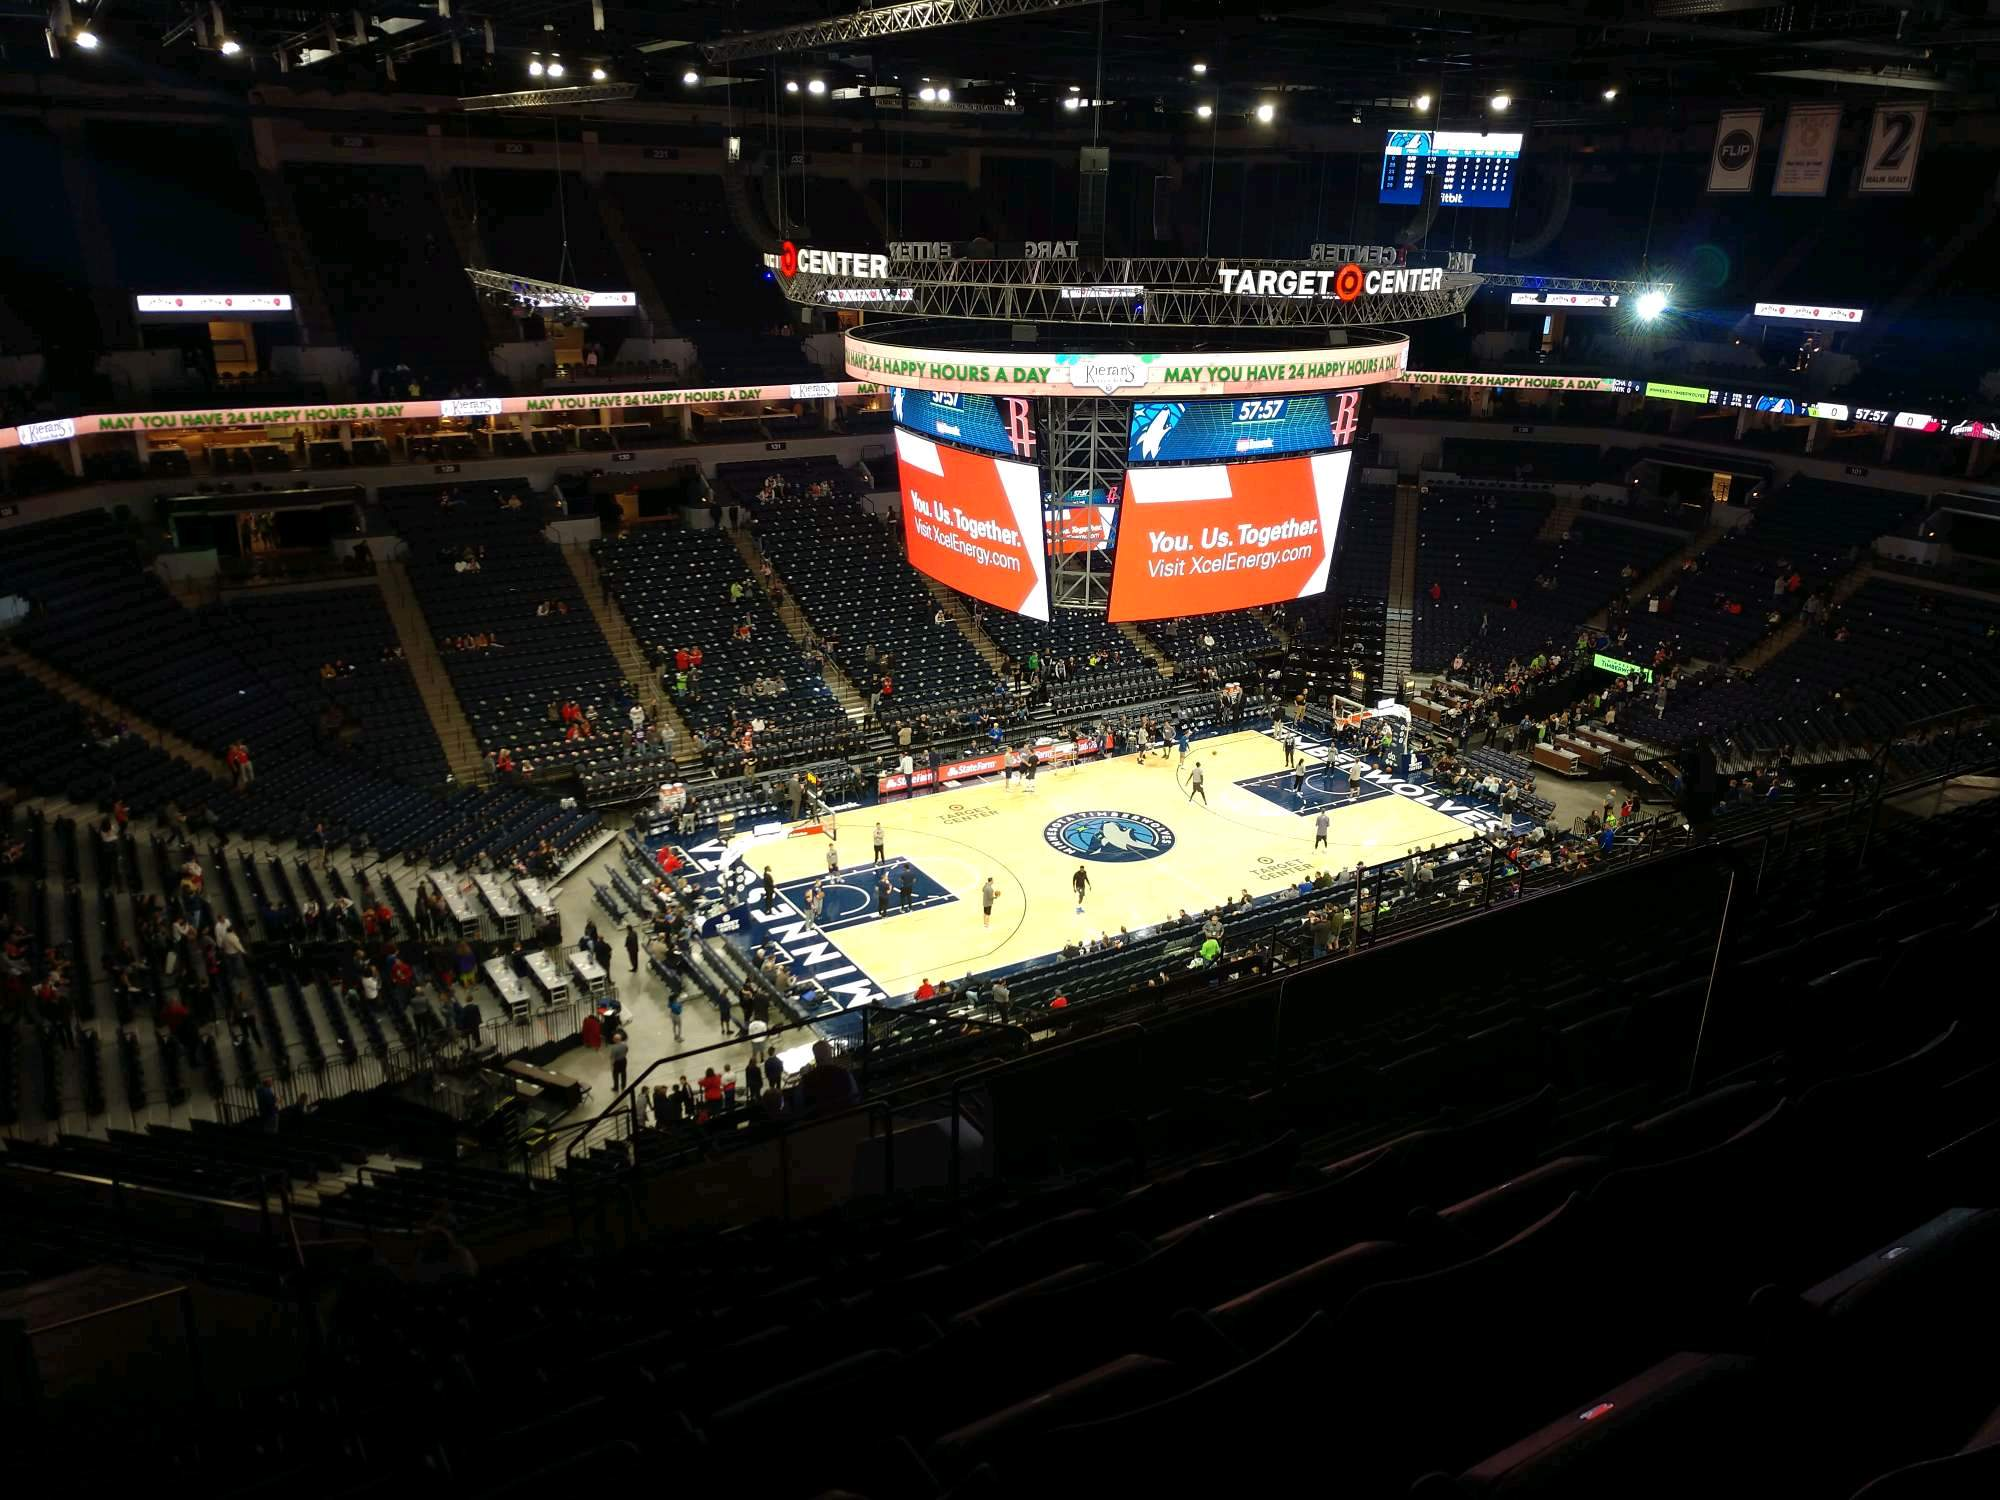 Target Center Section 215 Row S Seat 6